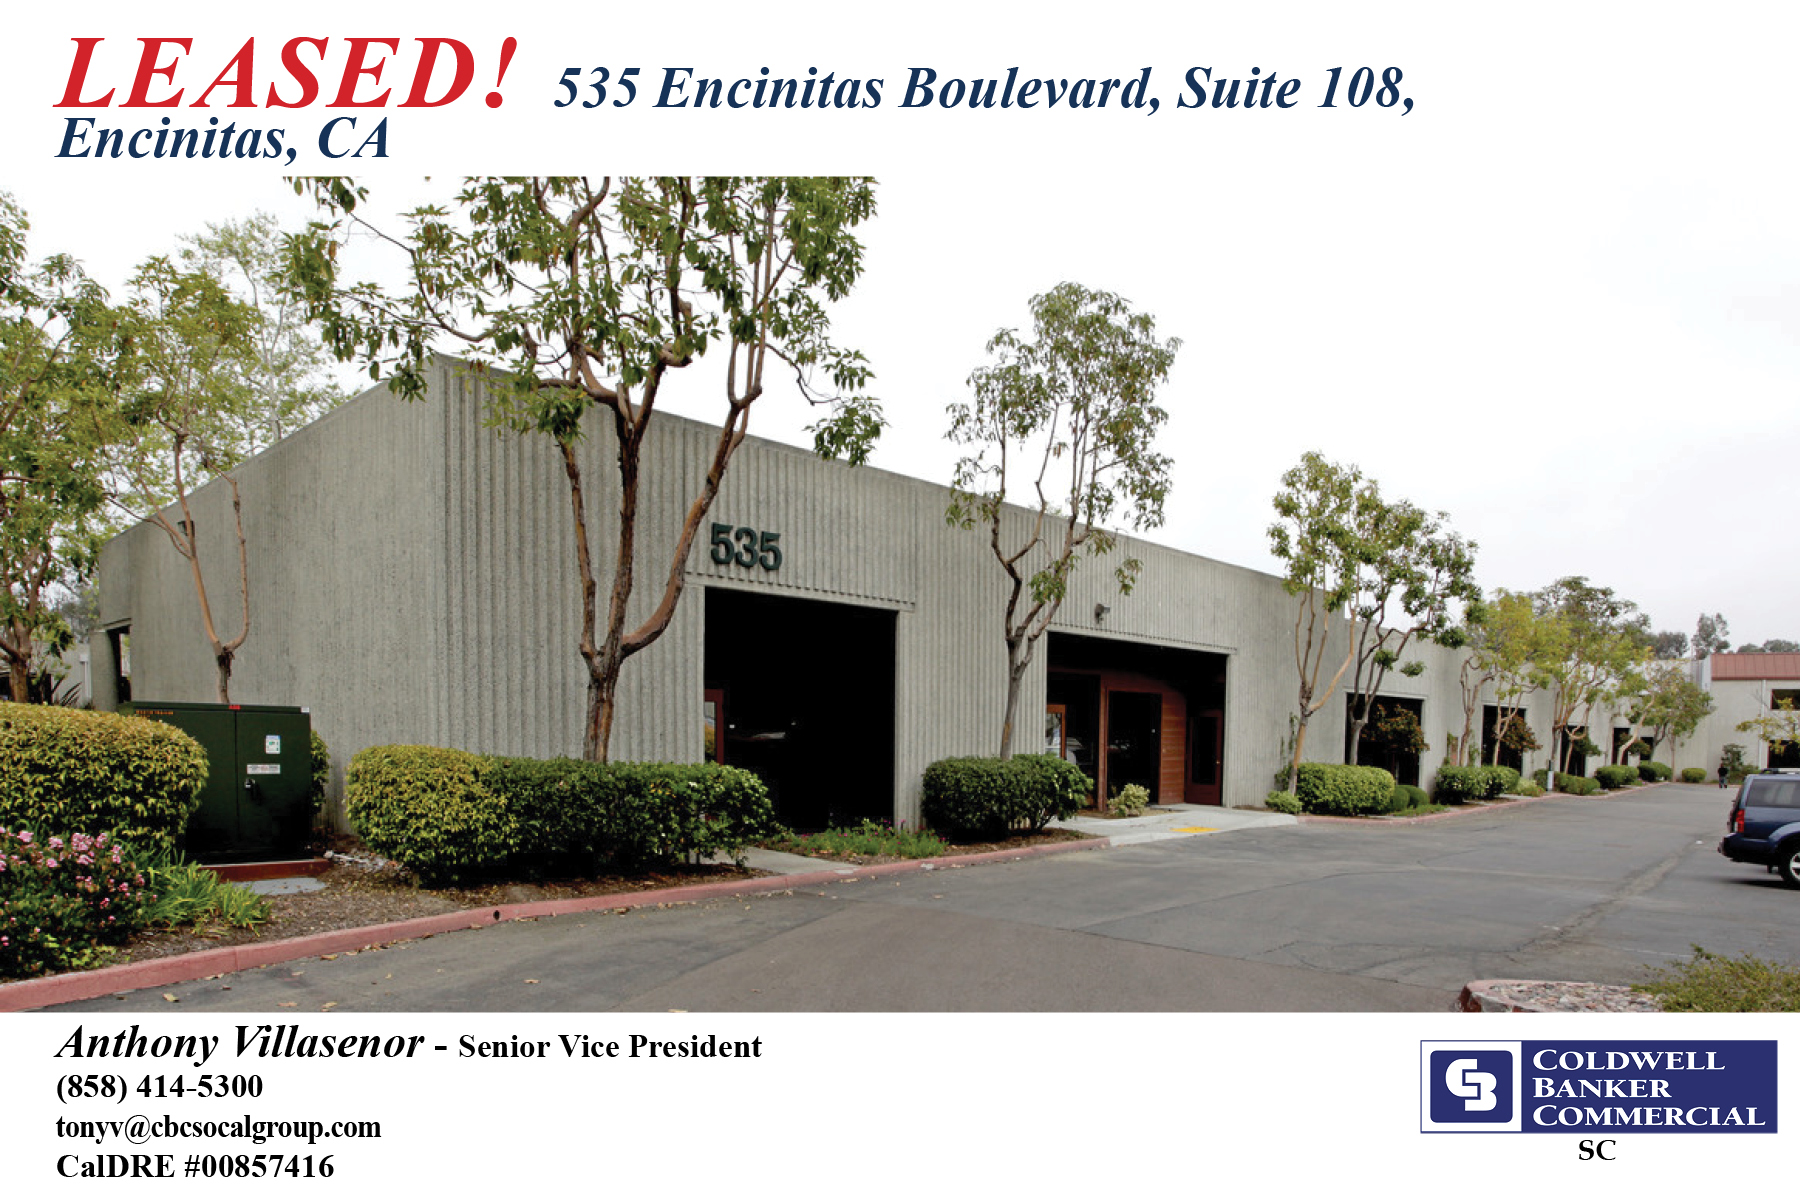 LEASED! ±847 SF Office Space in Encinitas